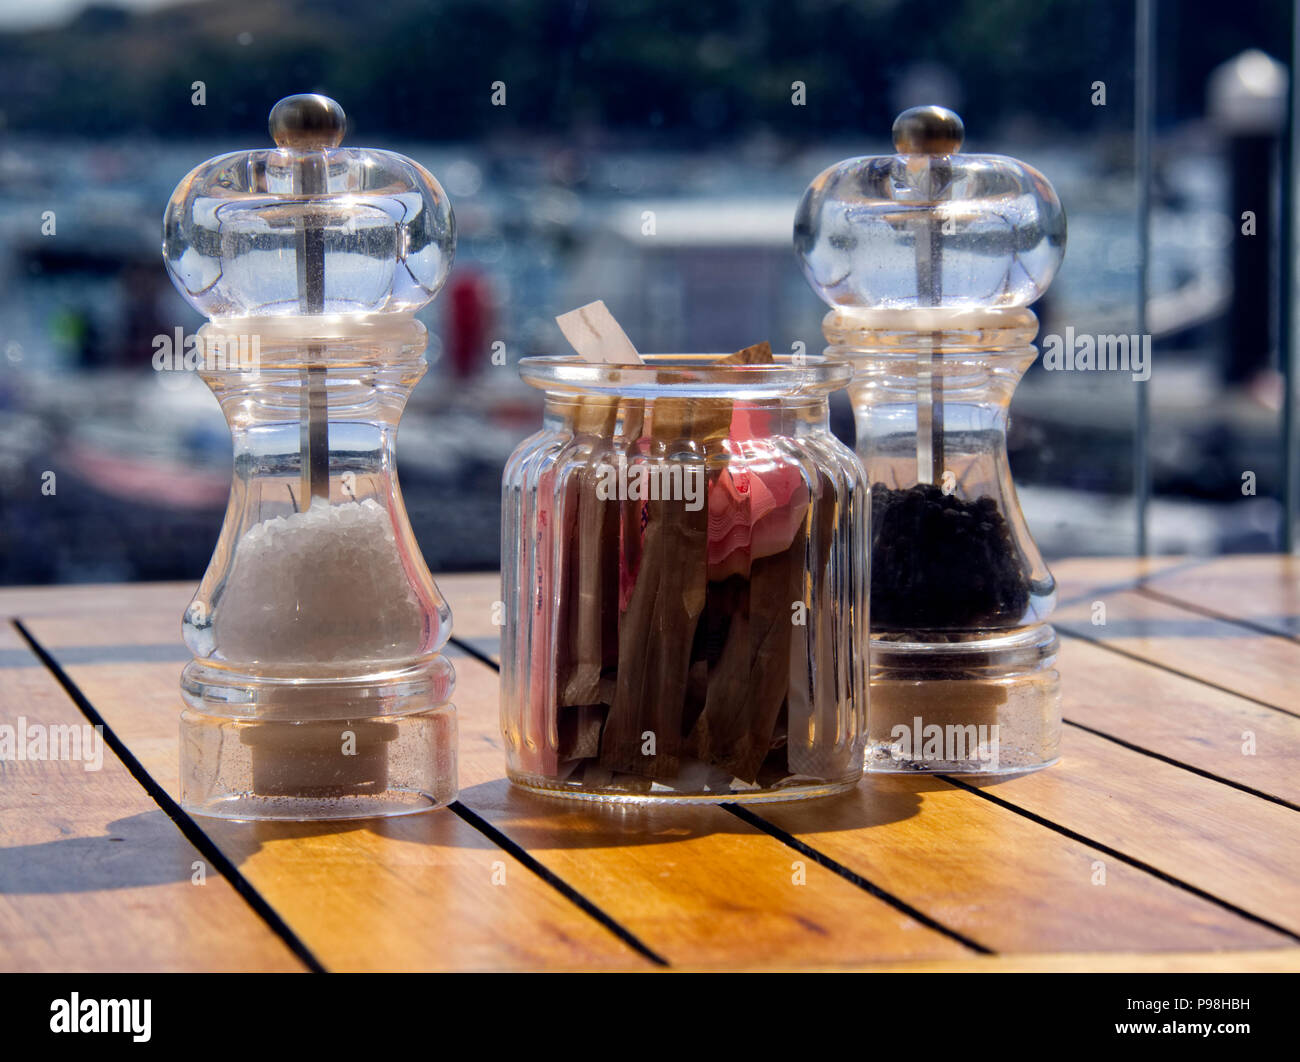 Salt and pepper mills together with a jar containing sugar sachets stand on the table in a harbour-side cafe. - Stock Image